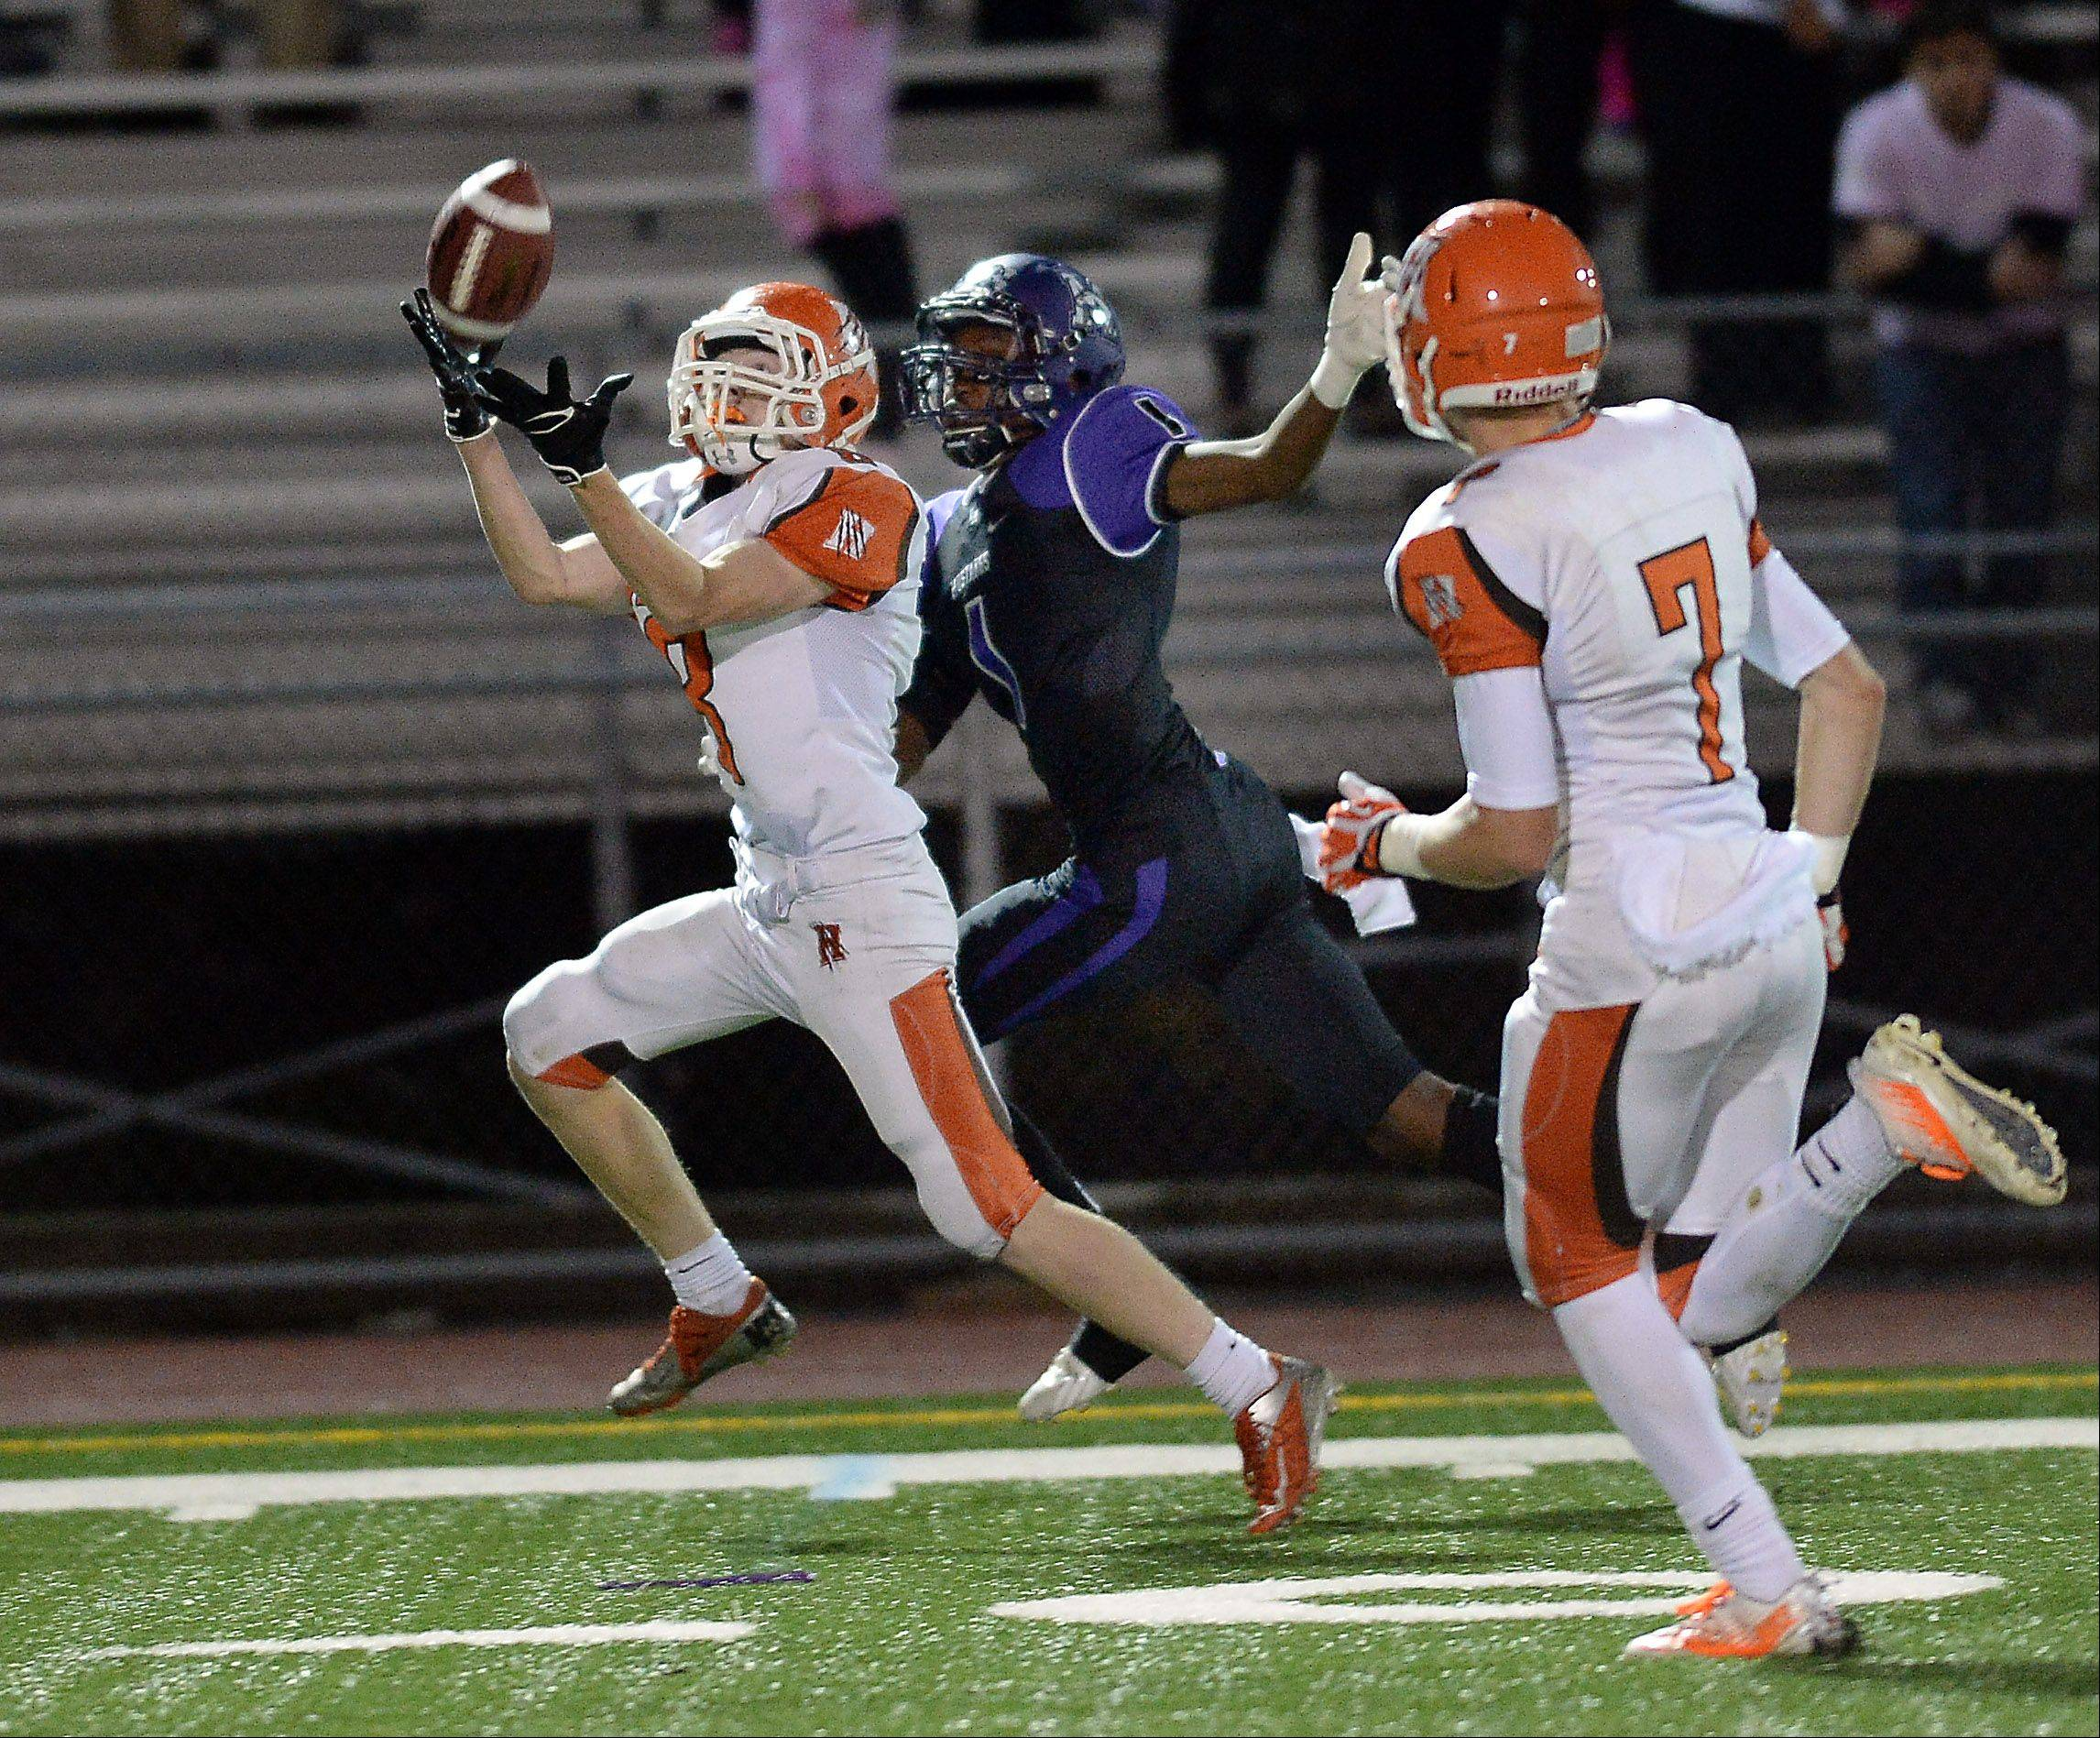 Hersey's Cole Monckton hauls in a pass.